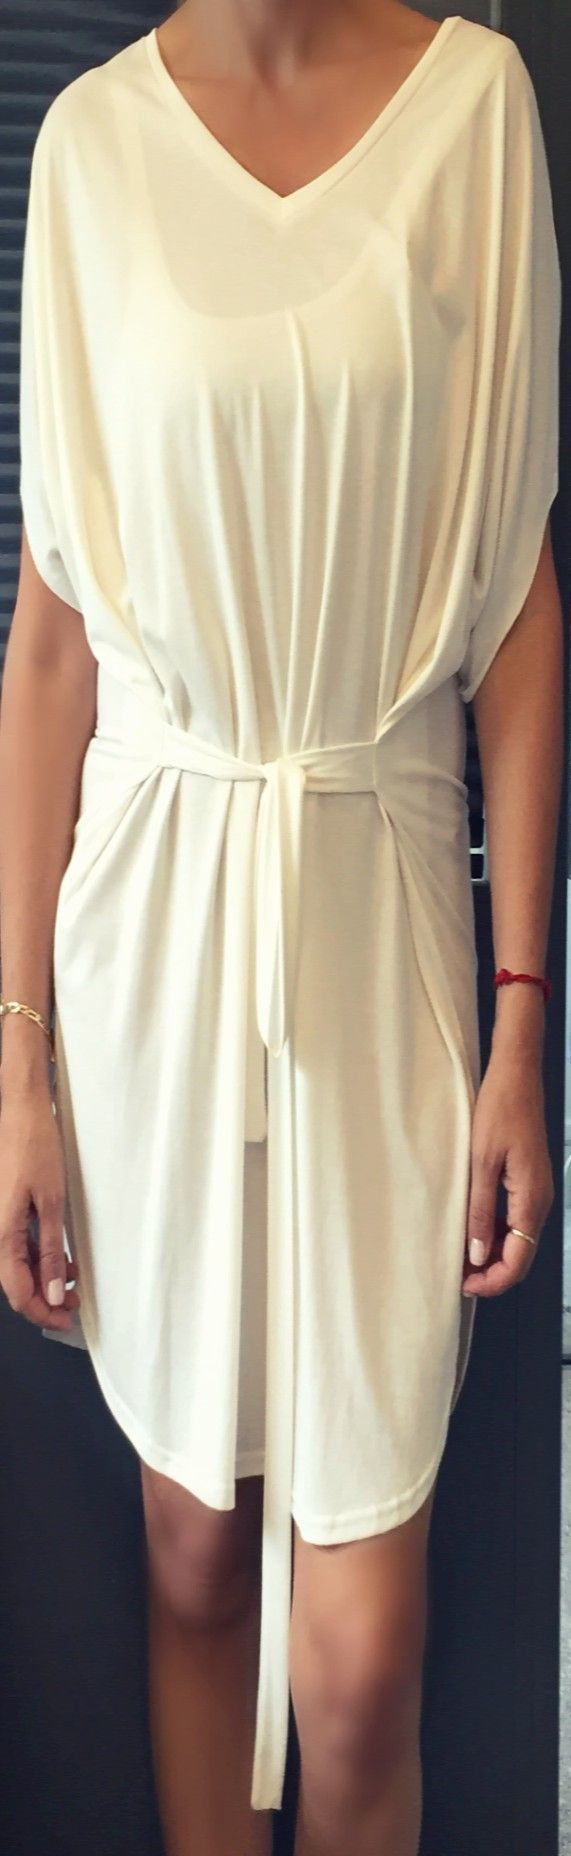 #Dress Of #White by #Nizal Discover more in our #Eshop #summerdress